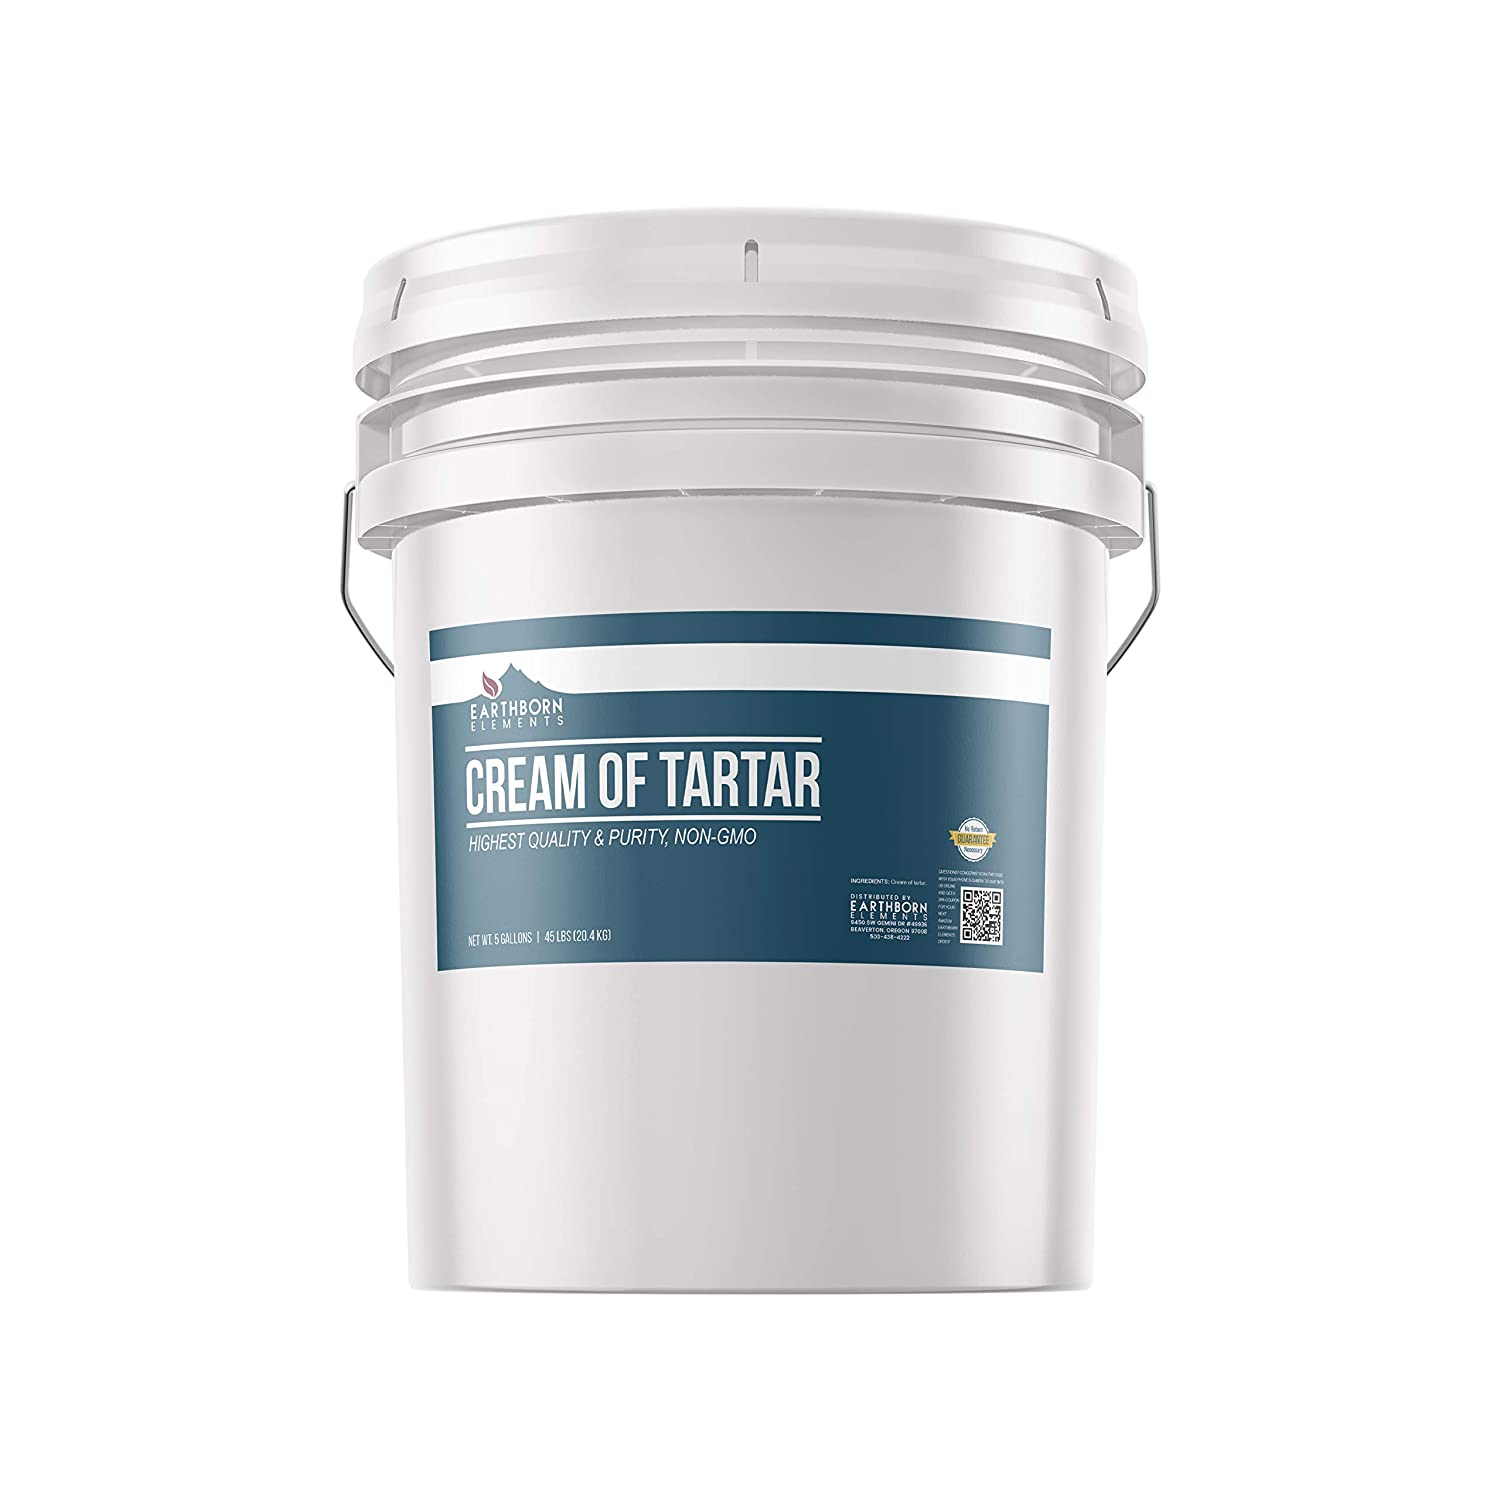 Cream of Tartar (5 Gallon) 100% Pure, Baking Additive, Non-GMO & Gluten-Free, Natural, Packaged in a Resealable Bucket by Earthborn Elements